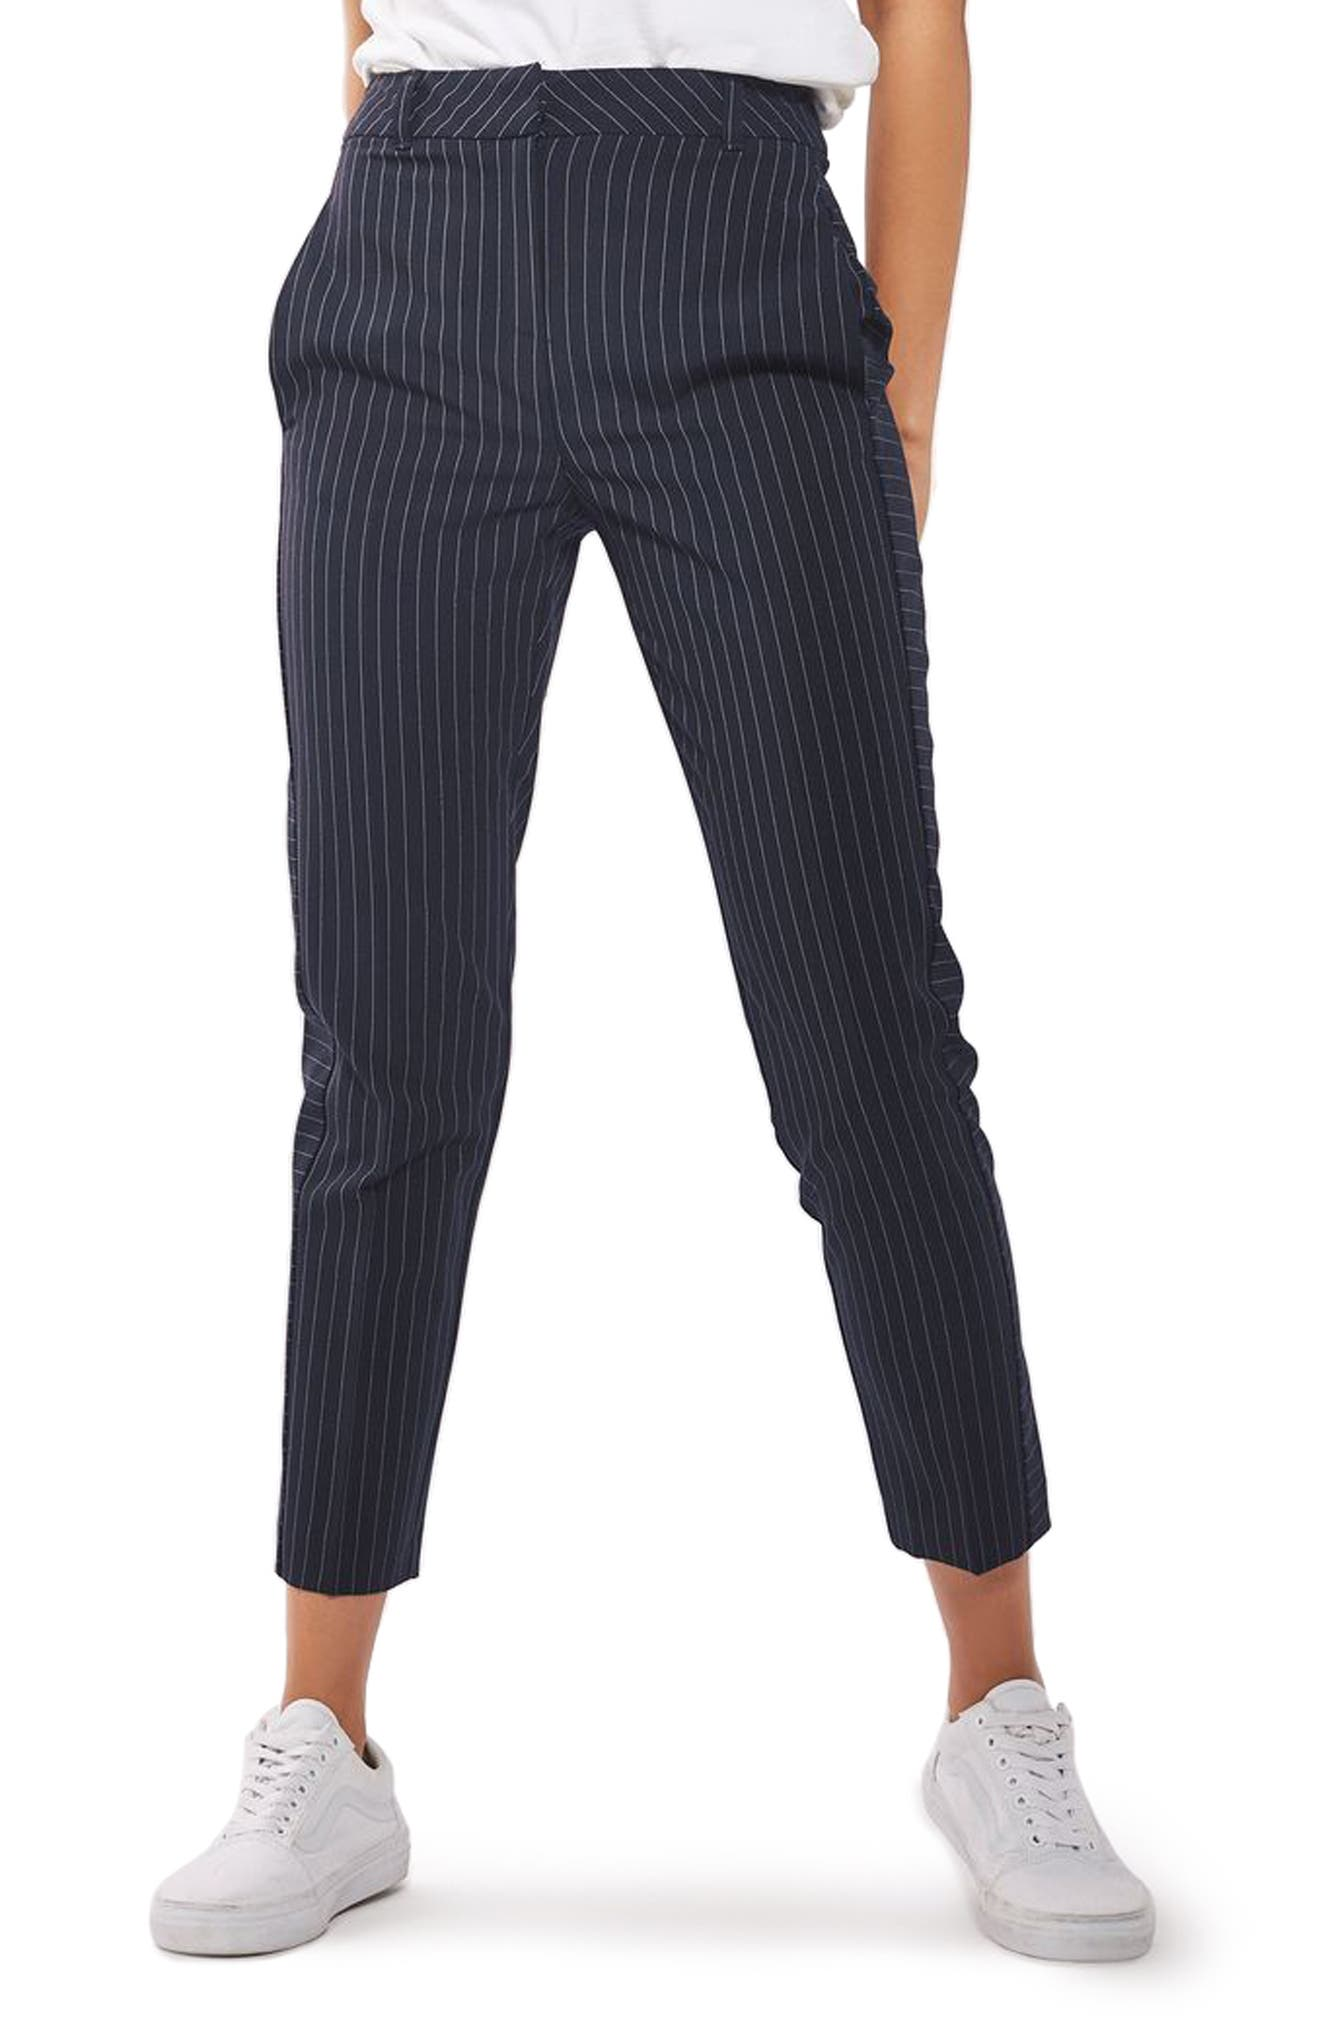 Cut About Pinstripe Cigarette Trousers,                         Main,                         color, Navy Blue